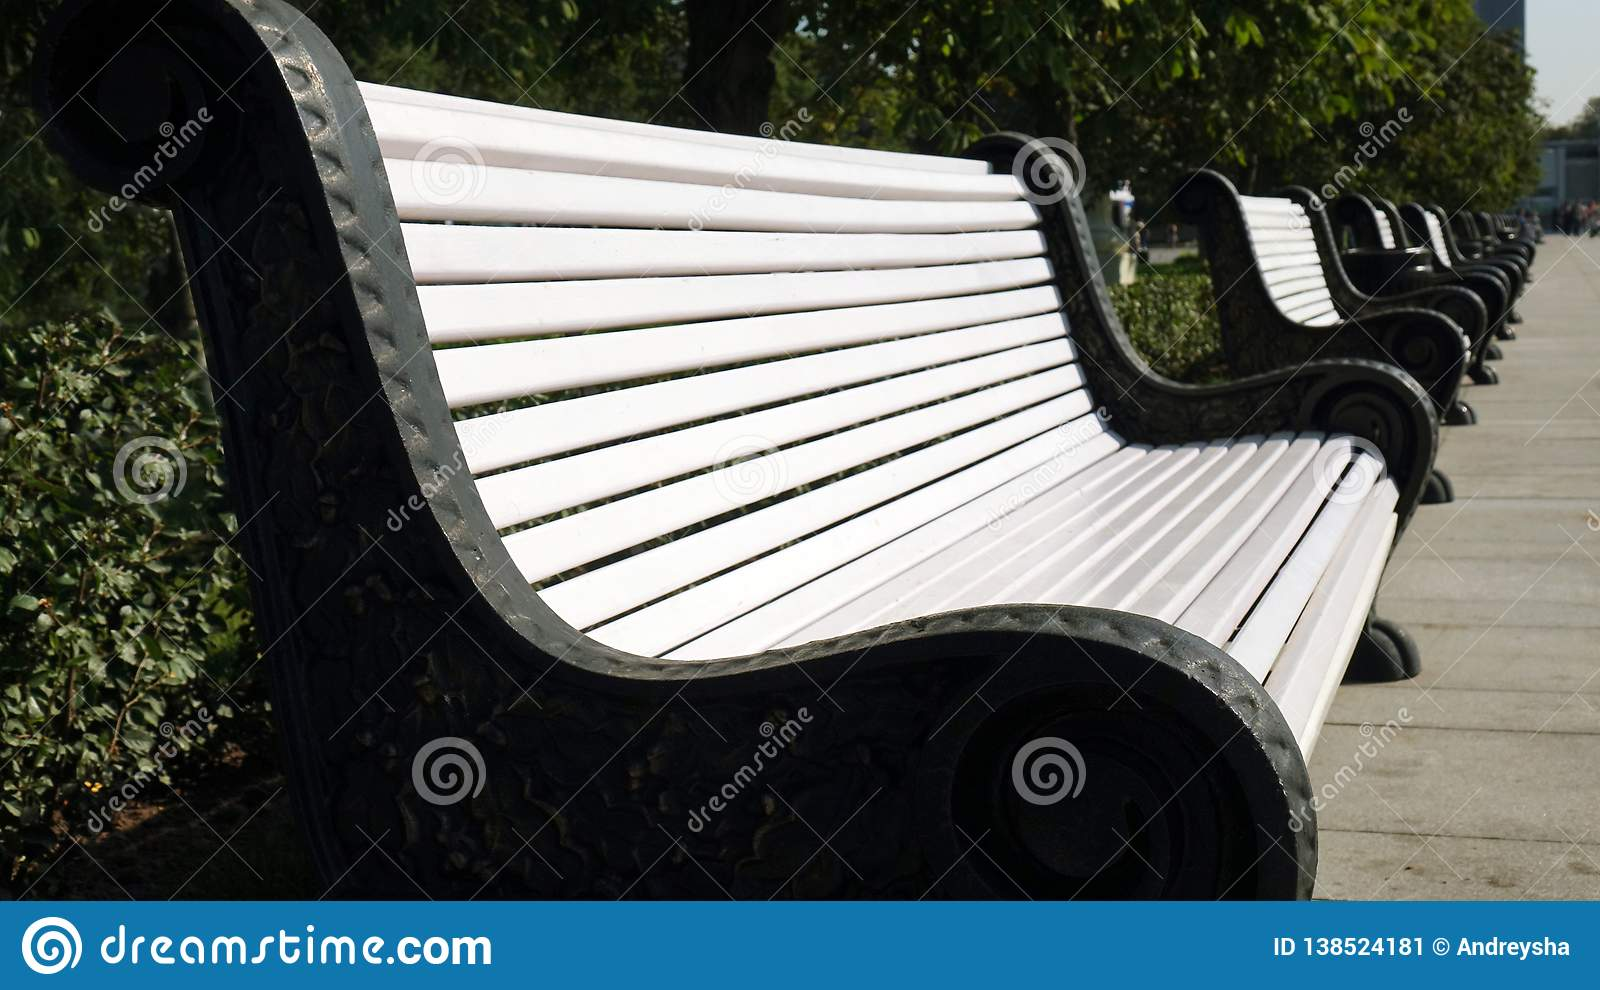 Picture of: Cast Iron Benches With Wooden Slats For Seats Stock Image Image Of Bench Moscow 138524181